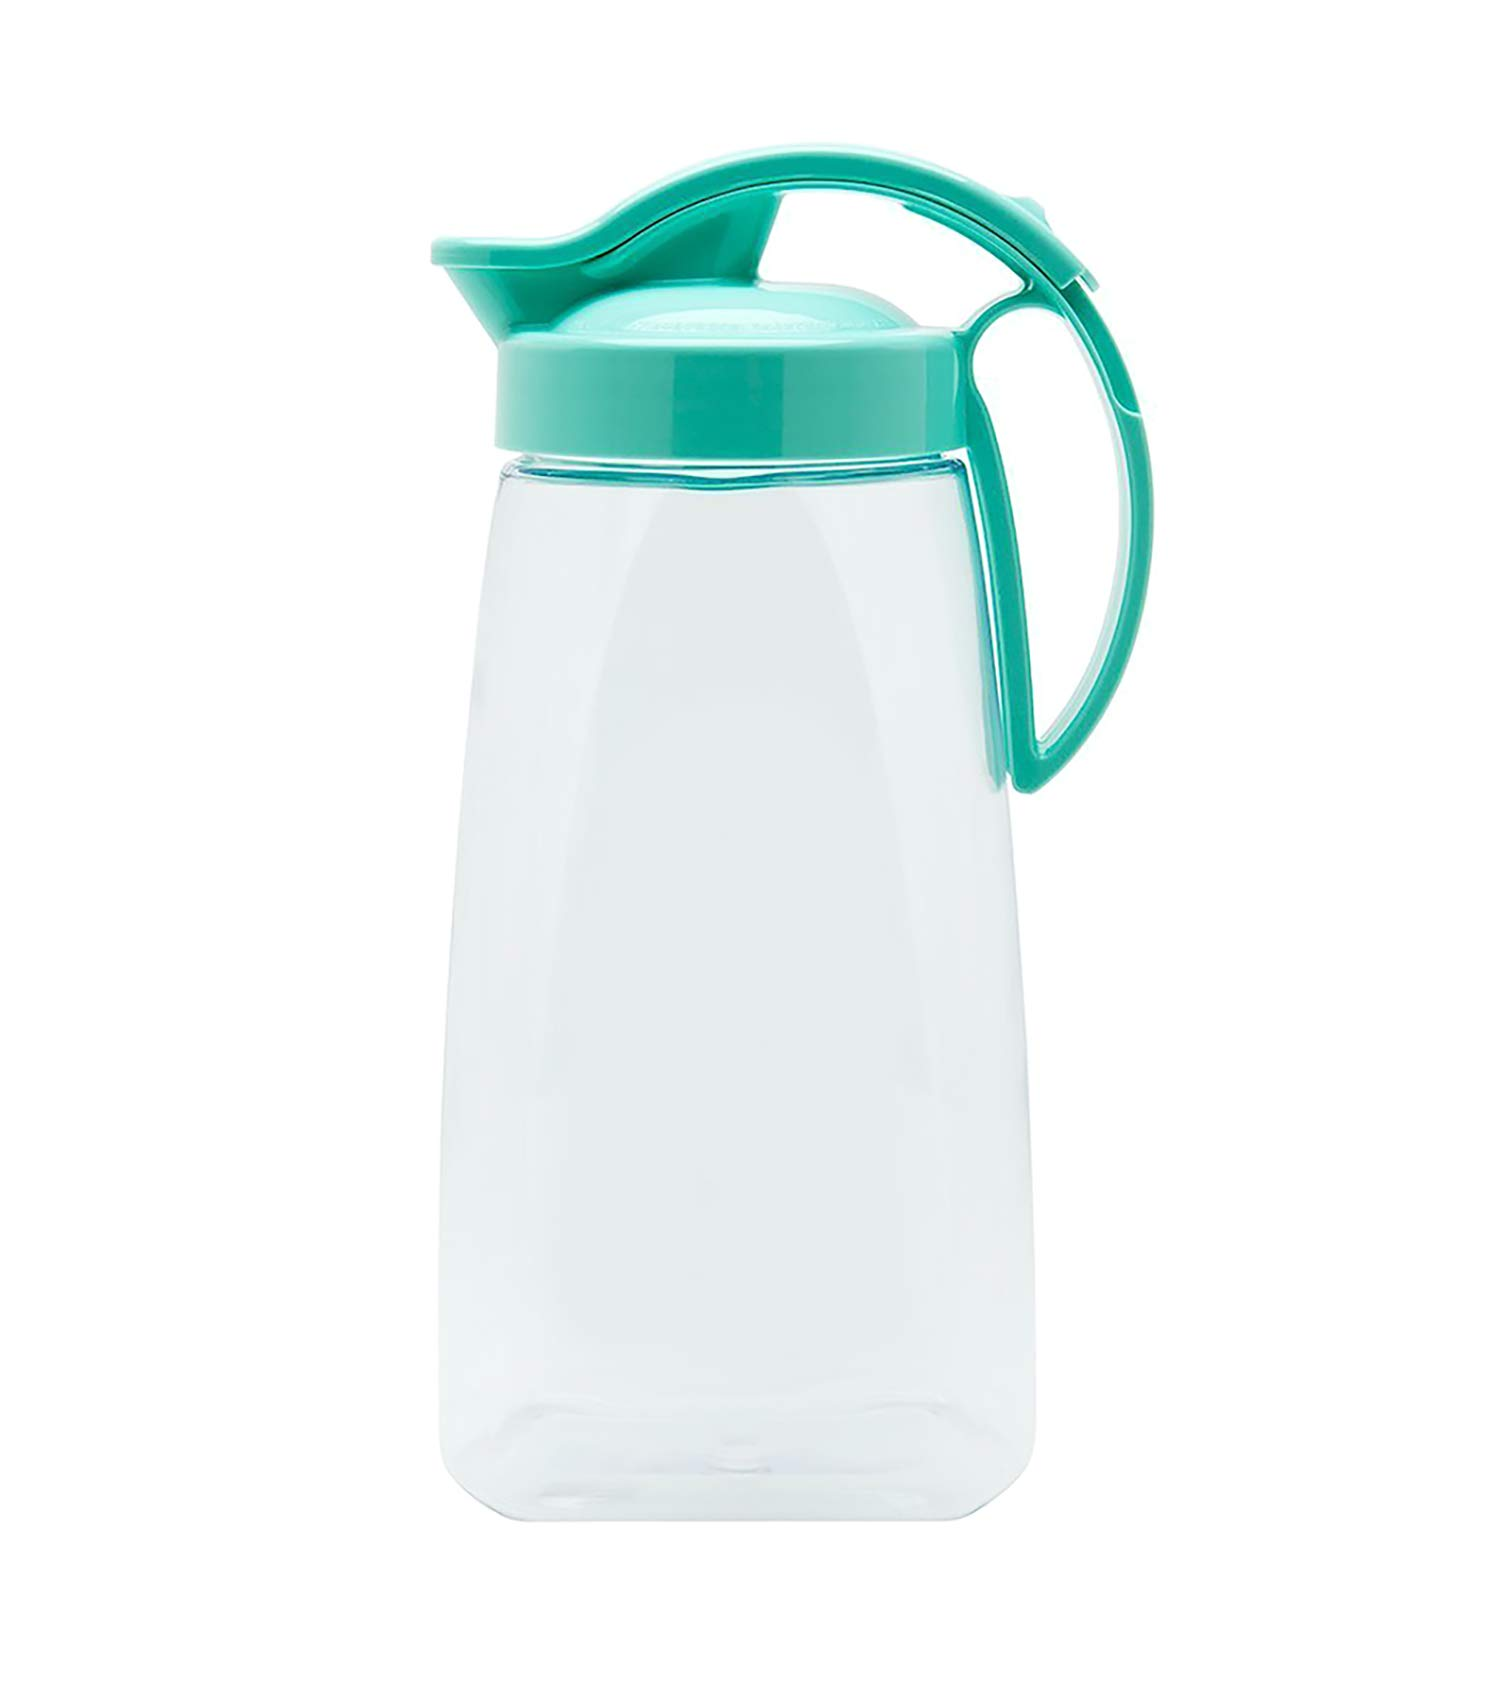 High Heat Resistant One-touch Airtight Pitcher 2.3QT (74oz) for Water, Coffee, Tea, Other Hot or Cold Beverages | Leak Proof & Space Saving, Dishwasher Safe, BPA Free | Made in Japan - Turquoise by Invisioncorp